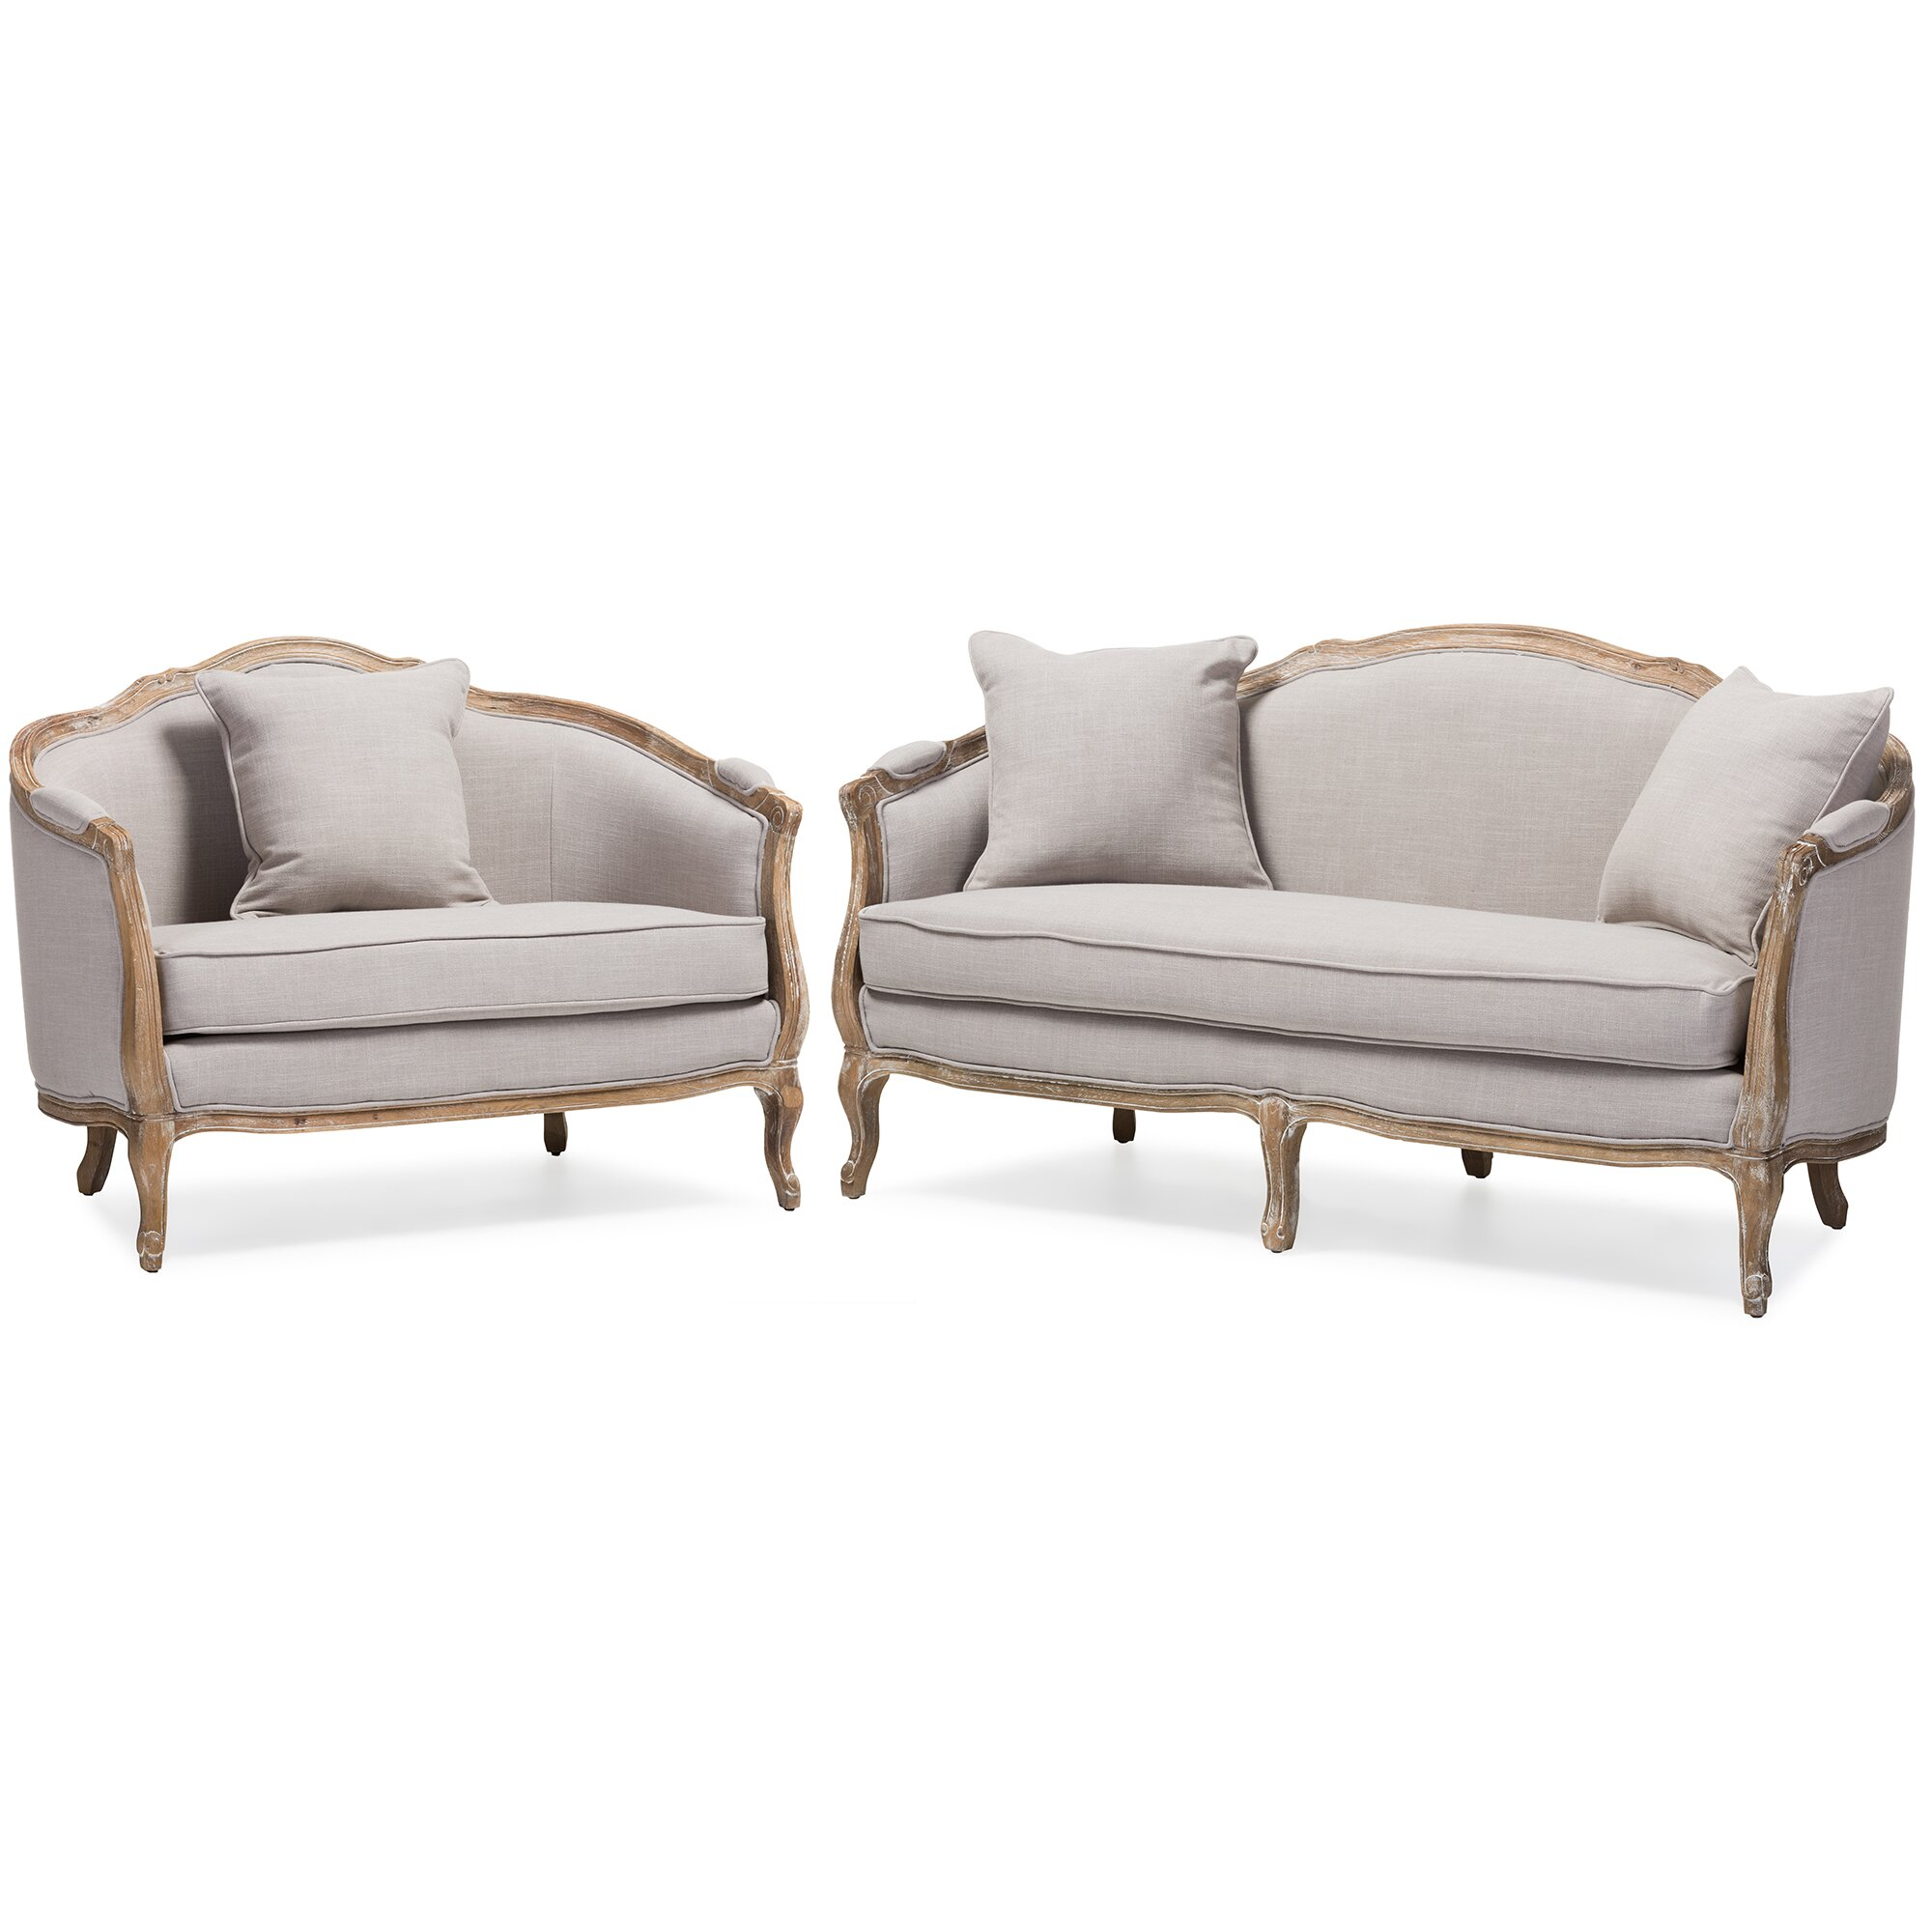 Wholesale Interiors Baxton Studio Benito Sofa And Loveseat Set Wayfair